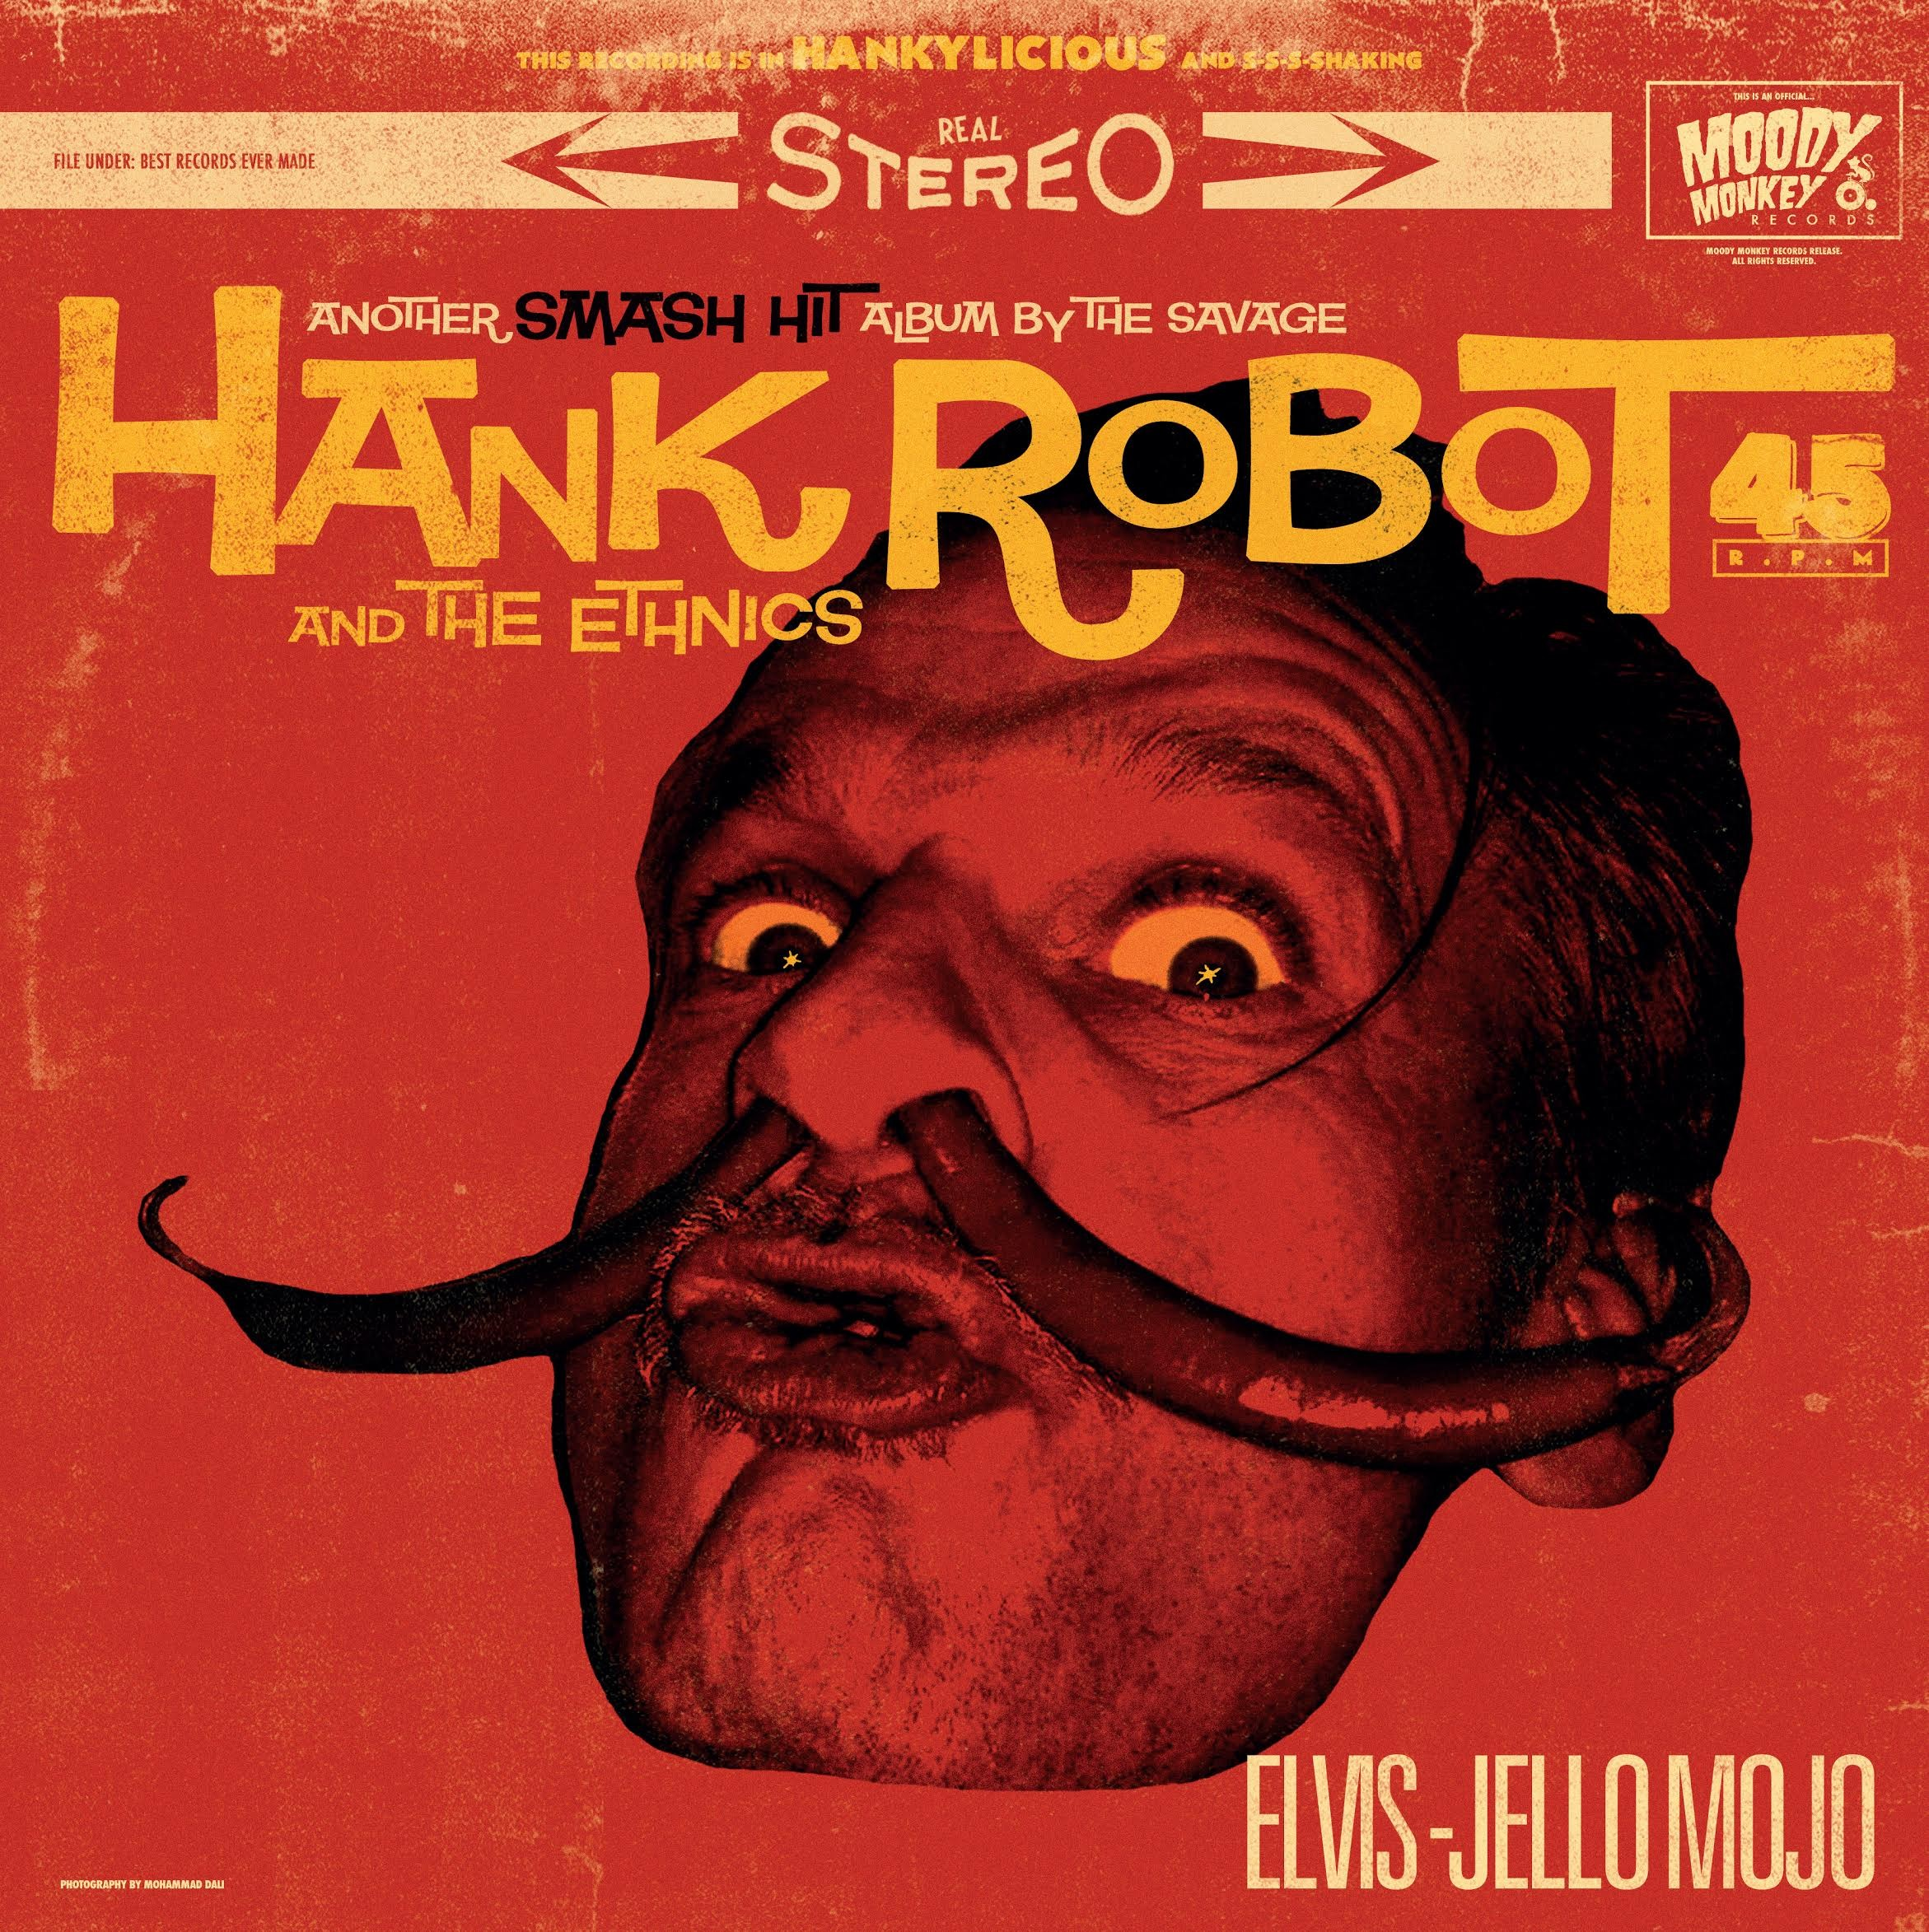 GET YOUR HANK ROBOT ALBUM NOW!